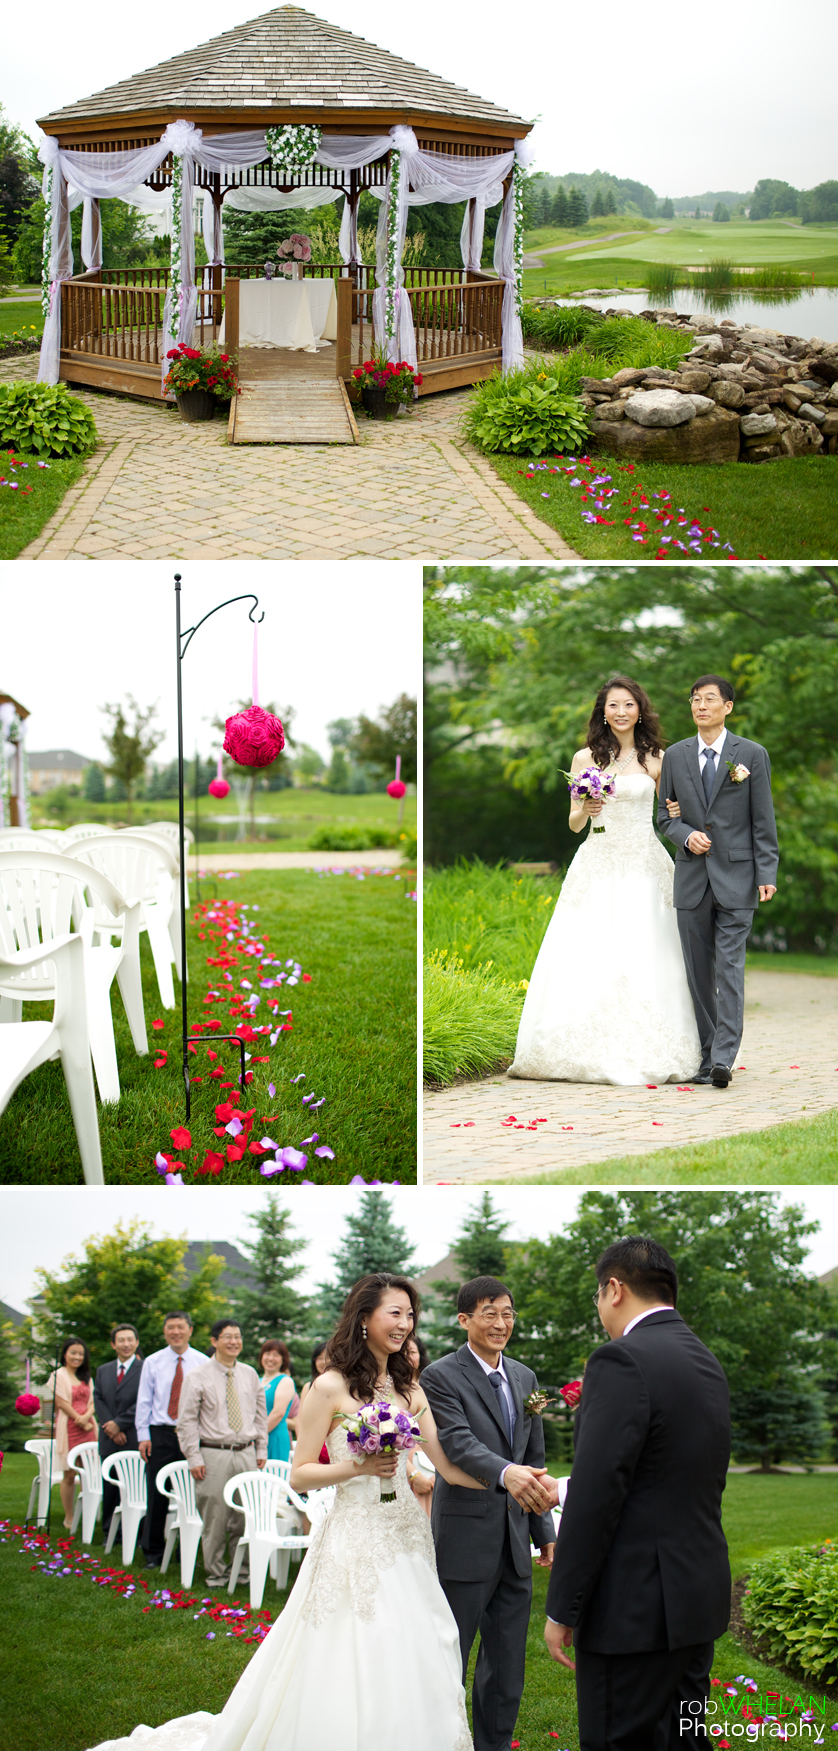 Stonebridge G Cc Outdoor Wedding Ceremony Rose Petals Golf D Rings Candid Natural Smile